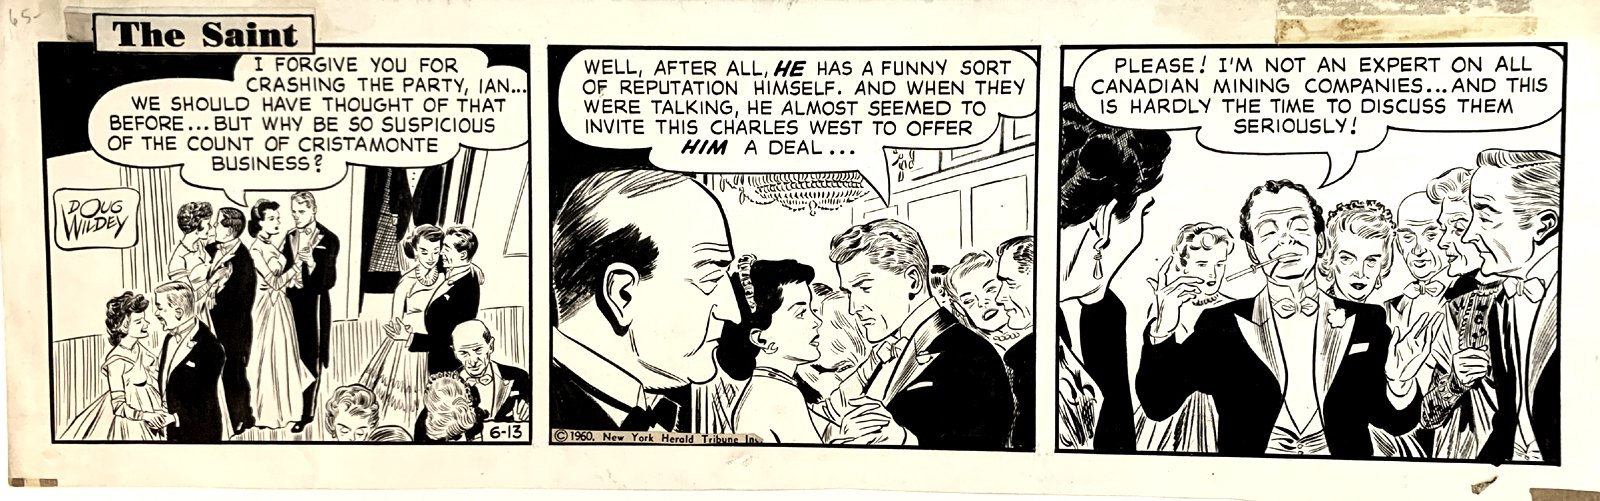 The Saint Daily Comic Strip 6-13-60